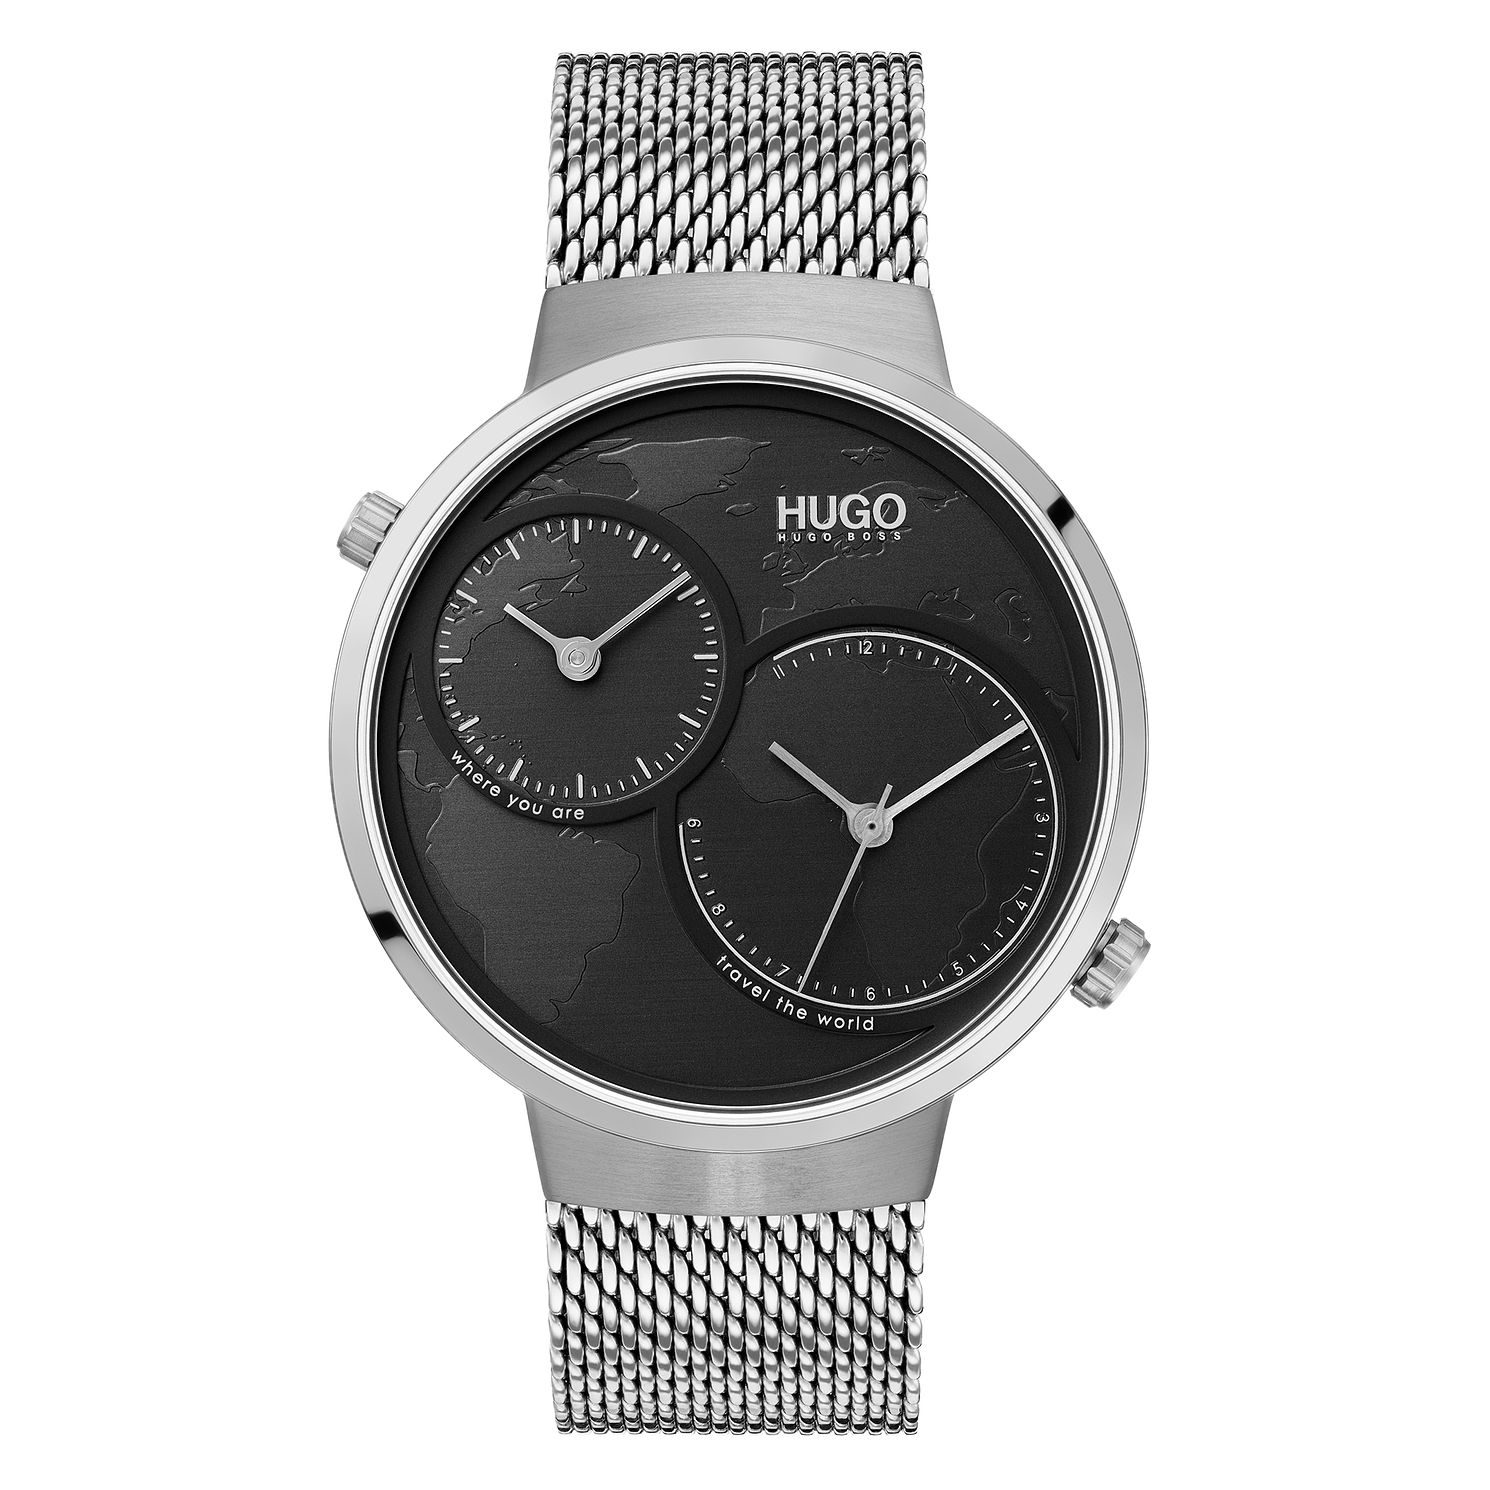 HUGO TRAVEL Men's Stainless Steel Mesh Bracelet Watch - Product number 3273148